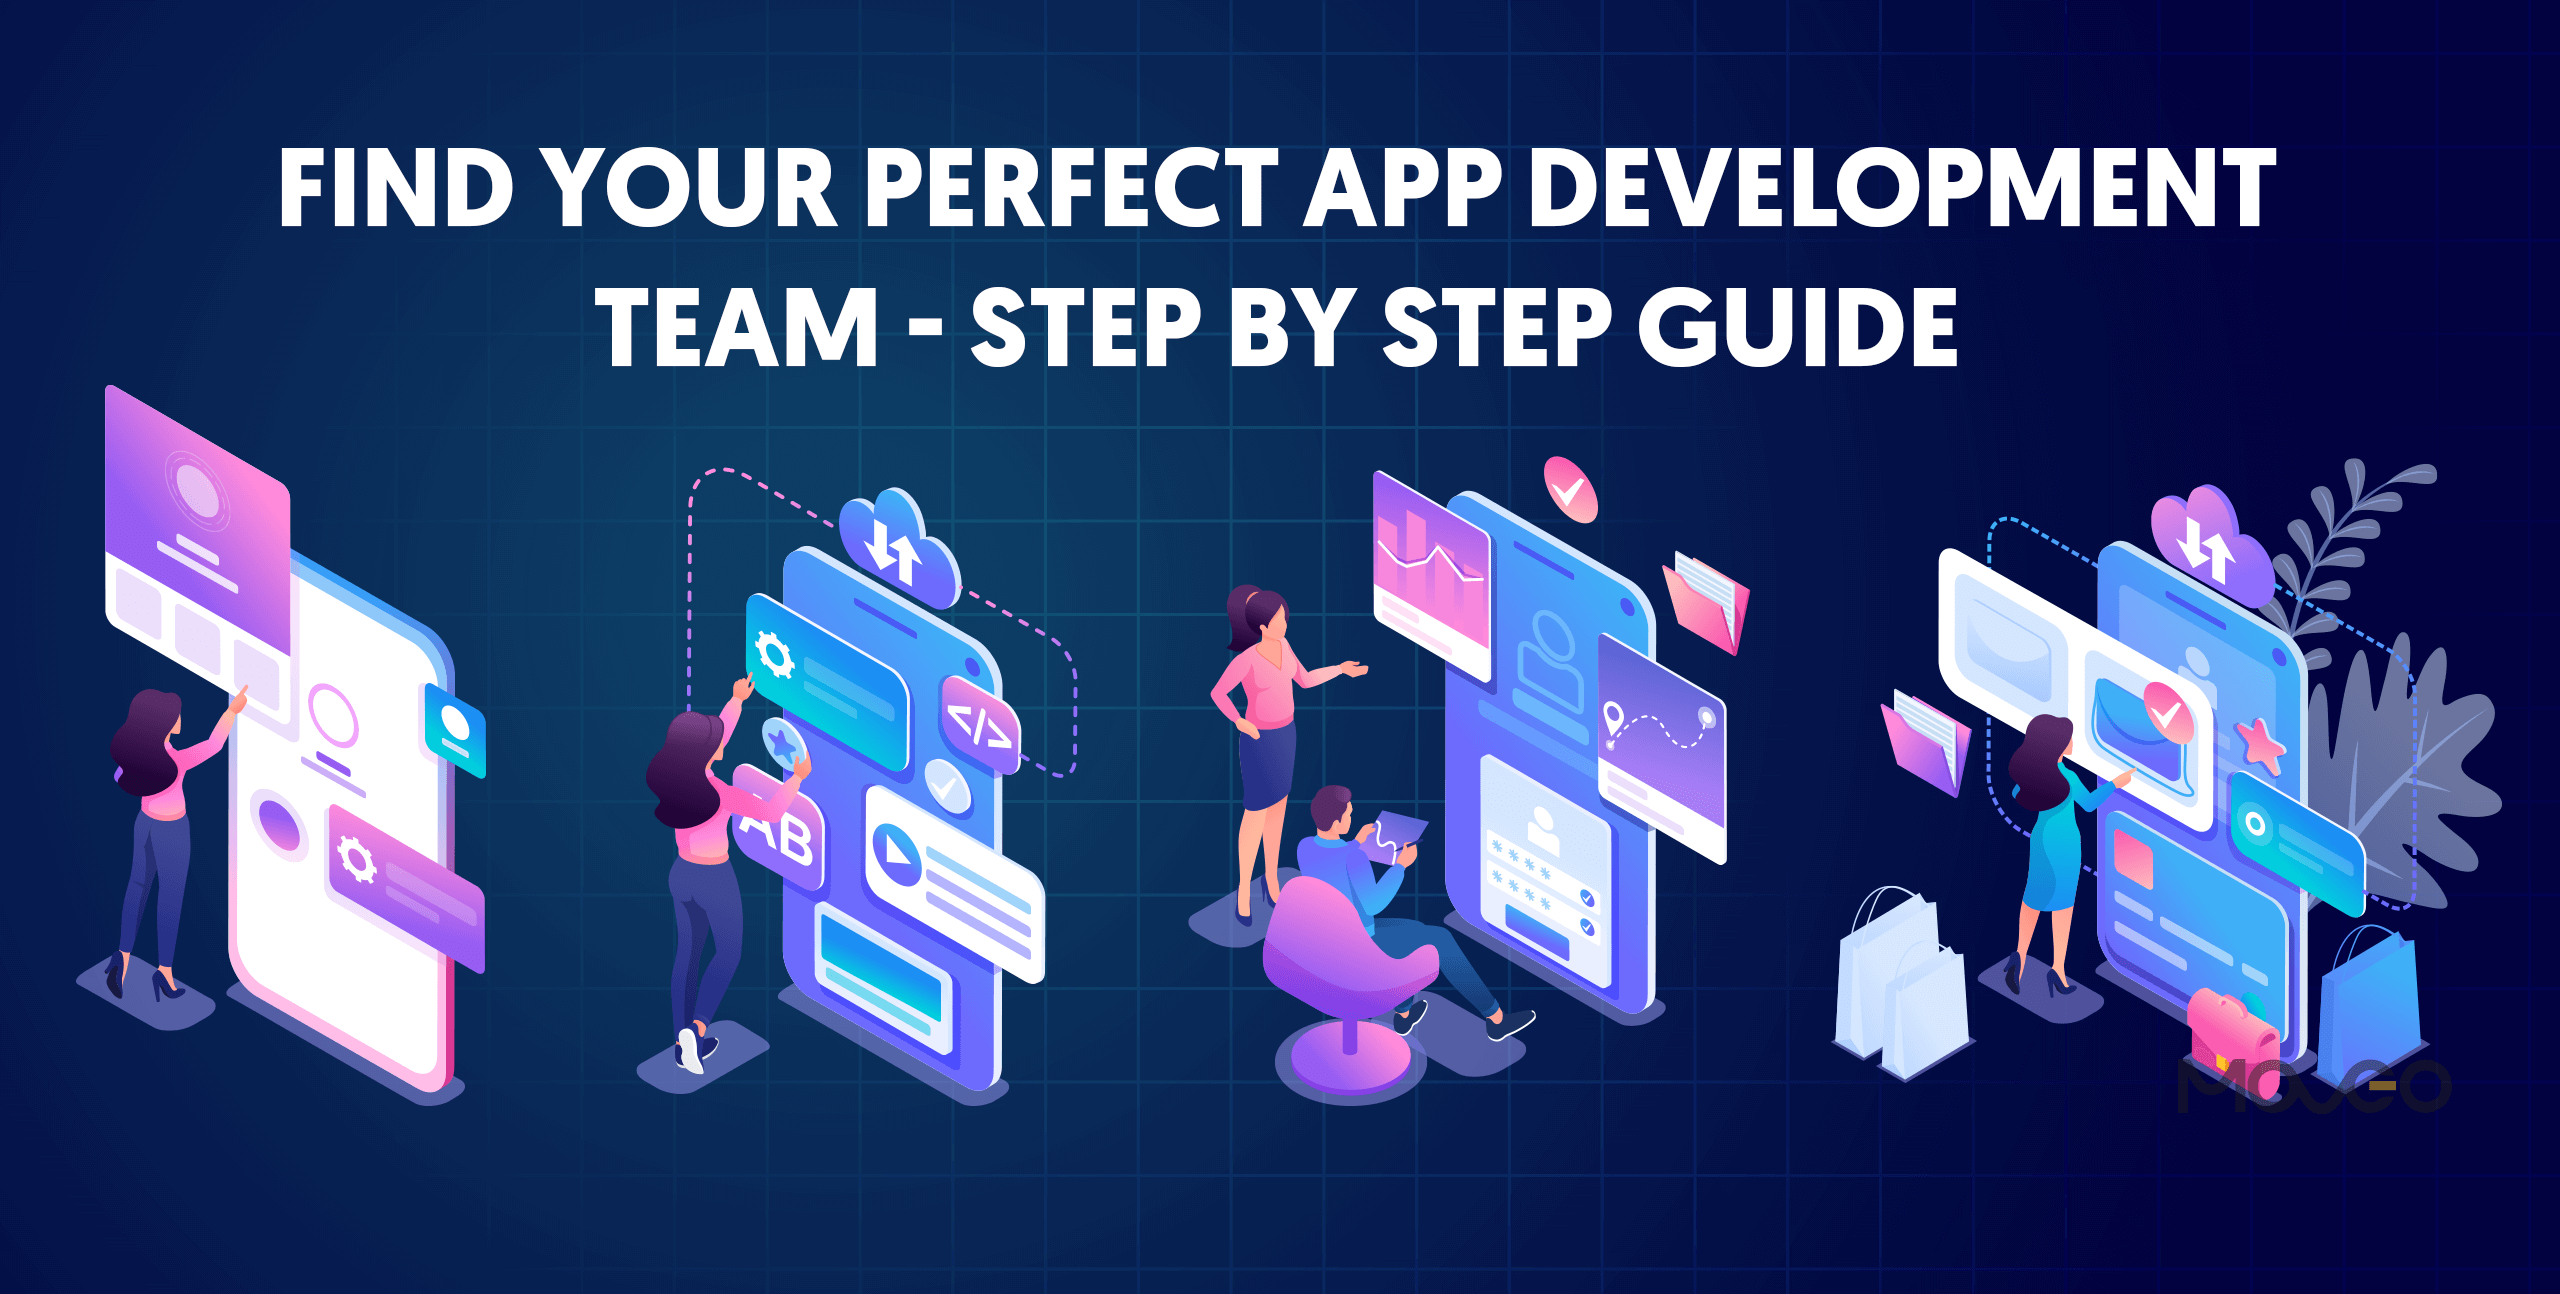 Find your perfect app development team – Step by step guide